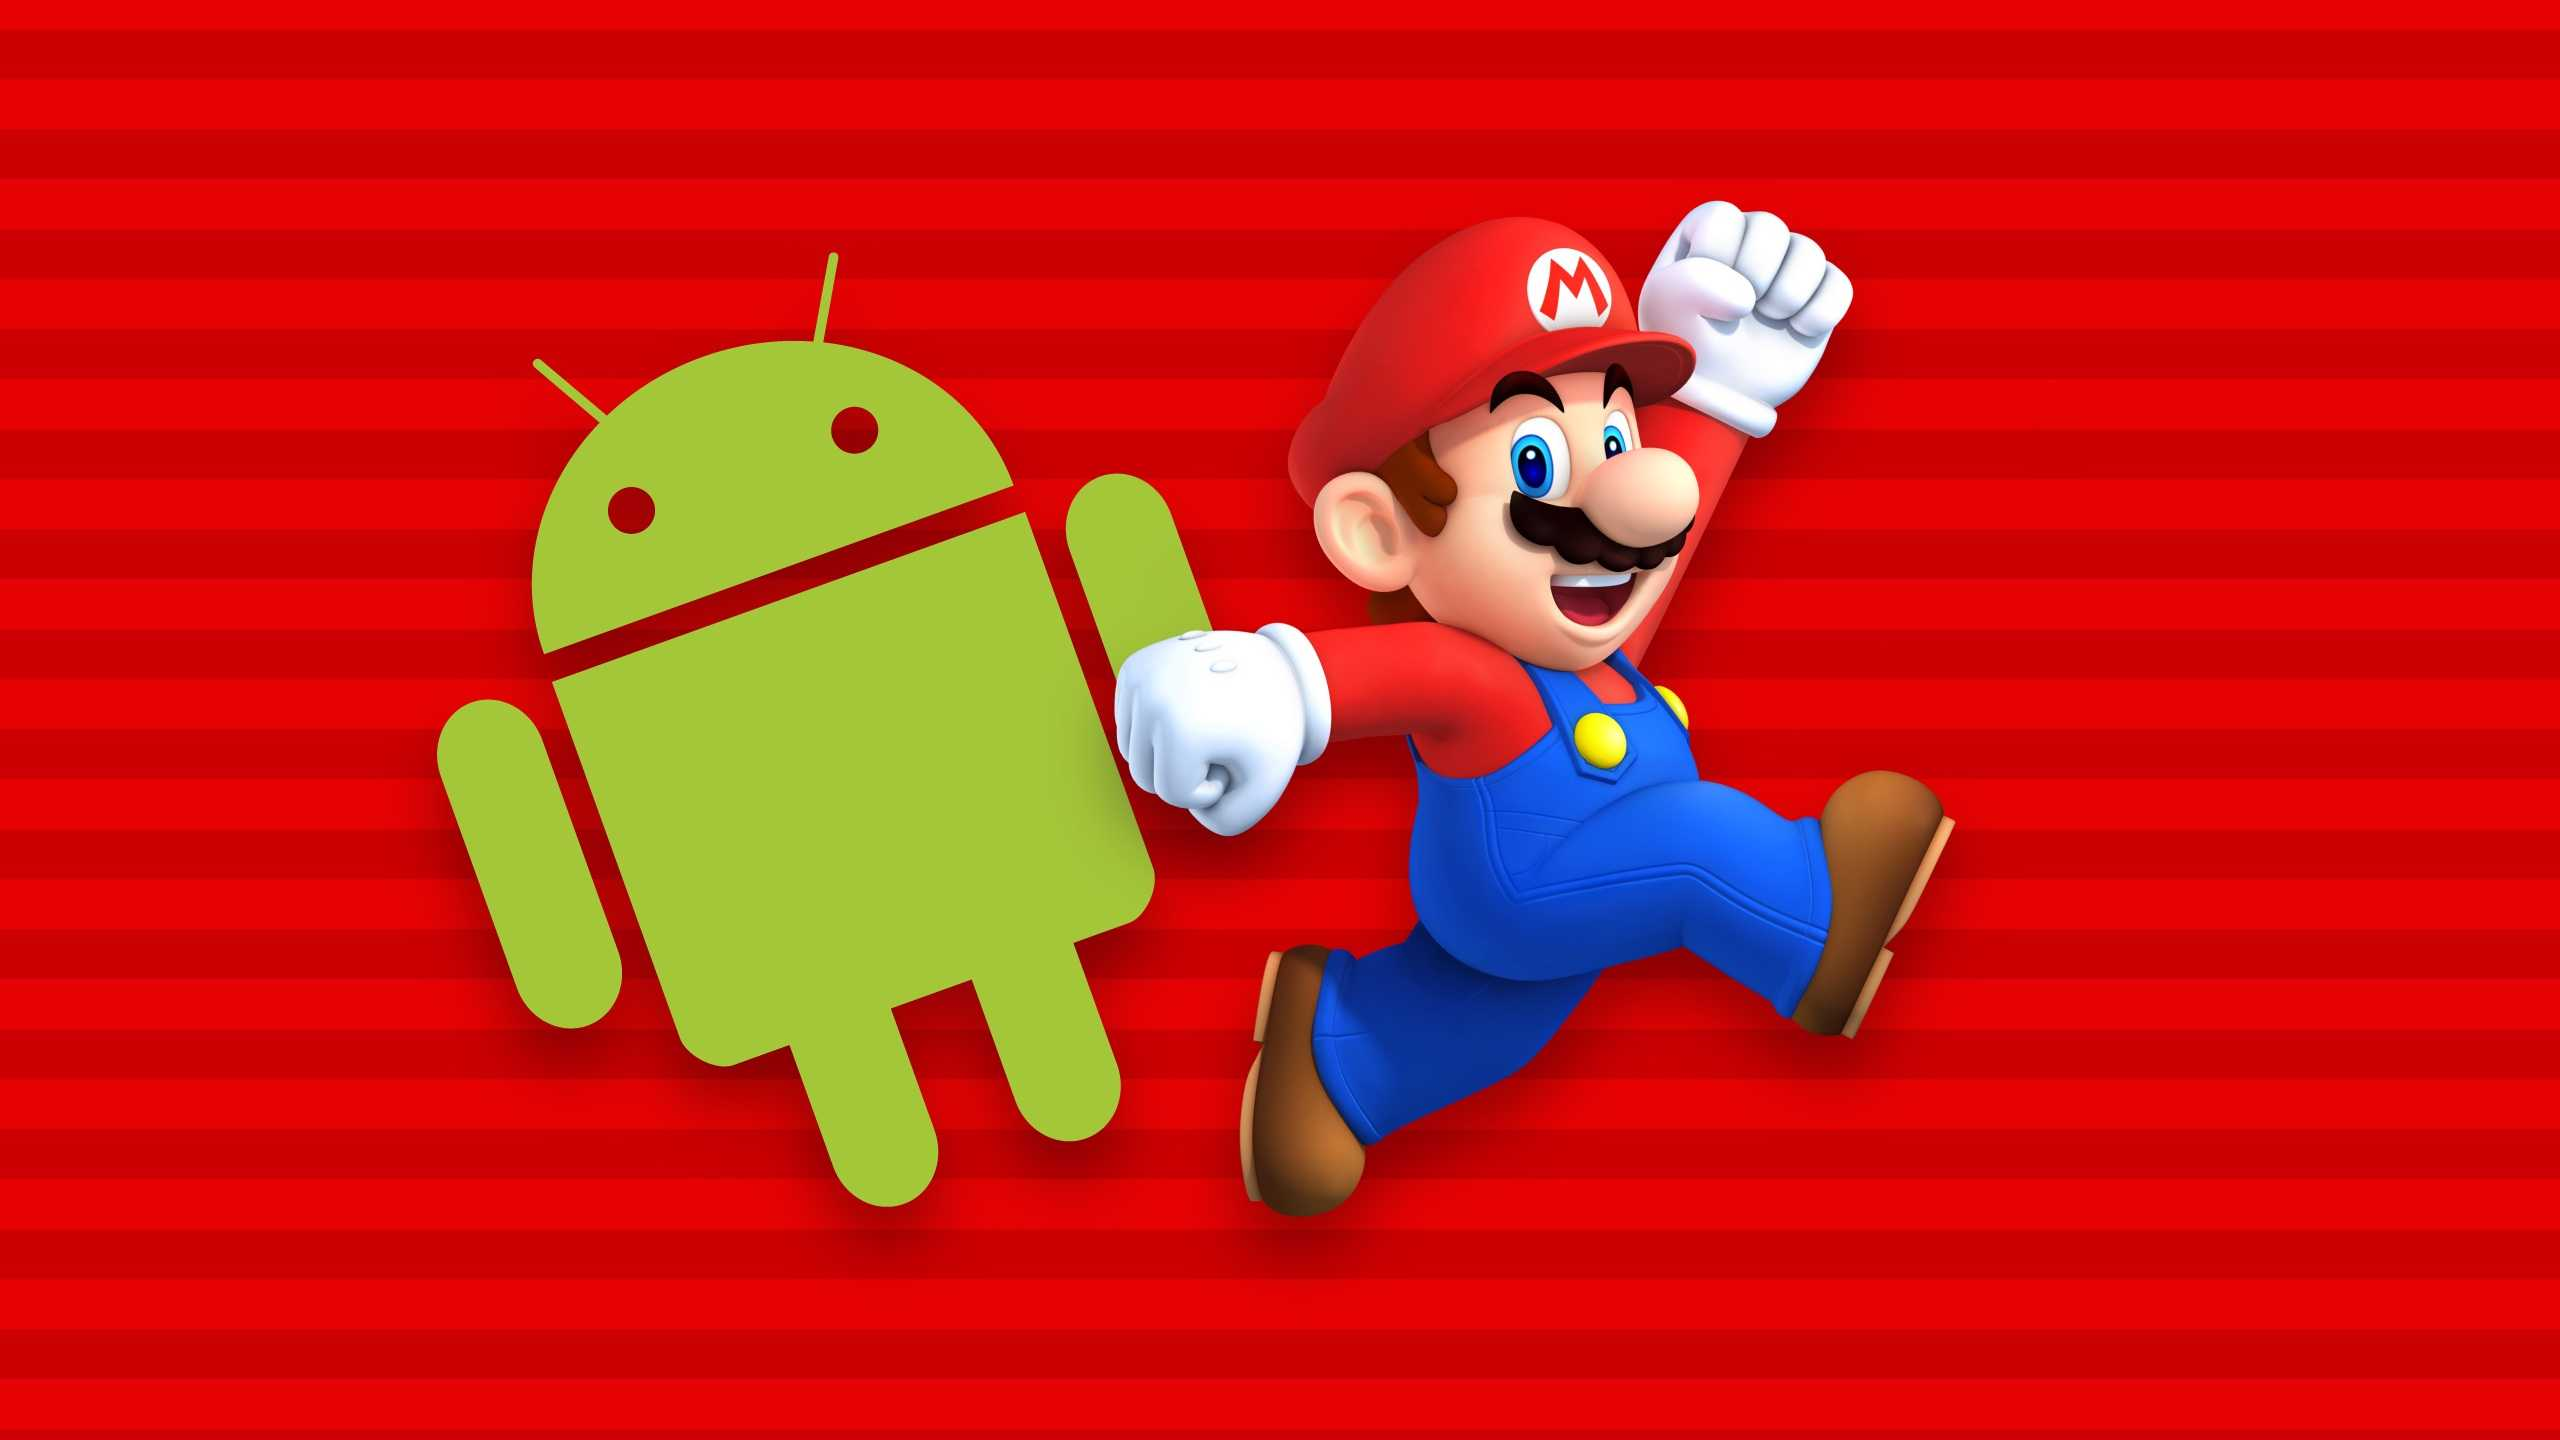 Super Mario Run revenue fell short of expectations, says Nintendo